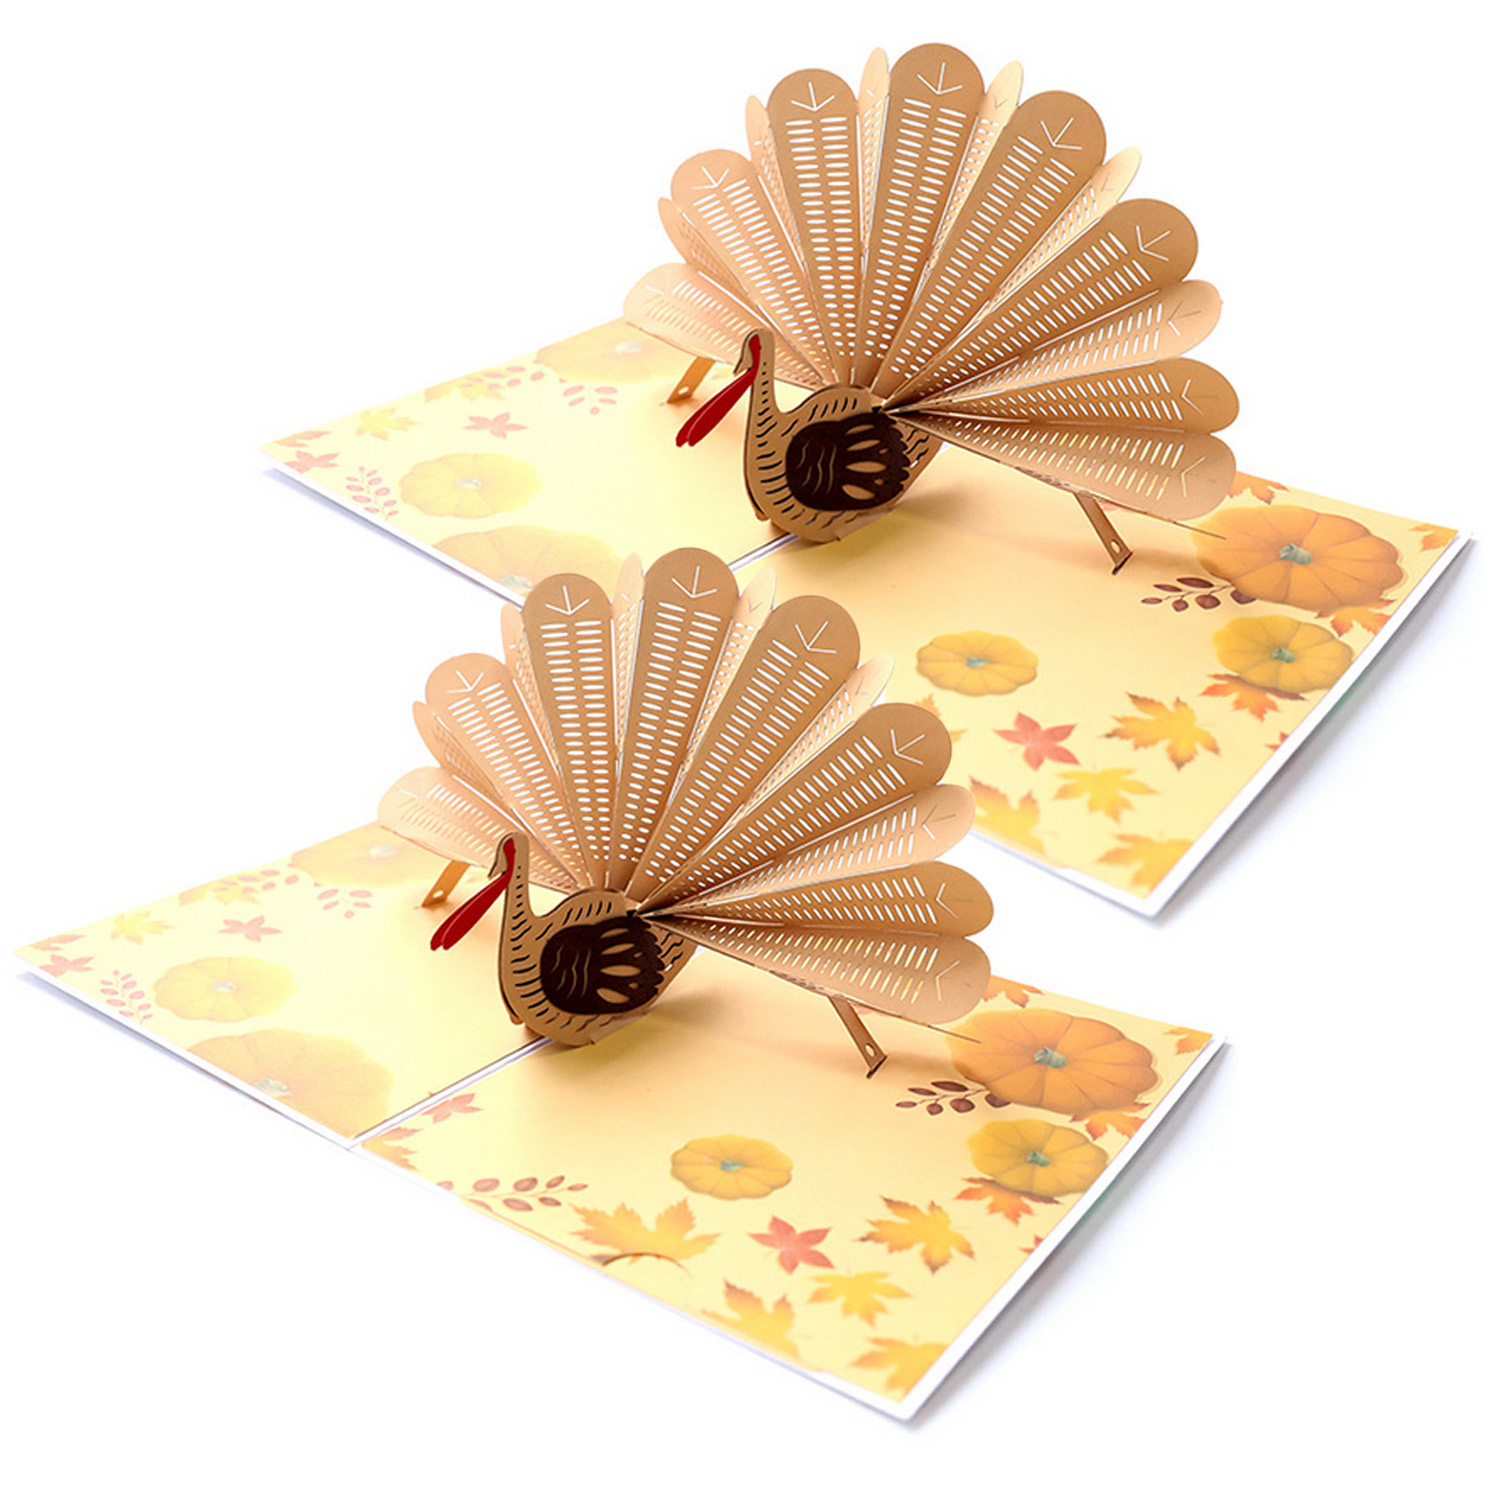 2PCS Funny 3D Pop-up Turkey Greeting Holiday Thank You Cards With Envelops For Thanksgiving Halloween Christmas Birthday Wedding